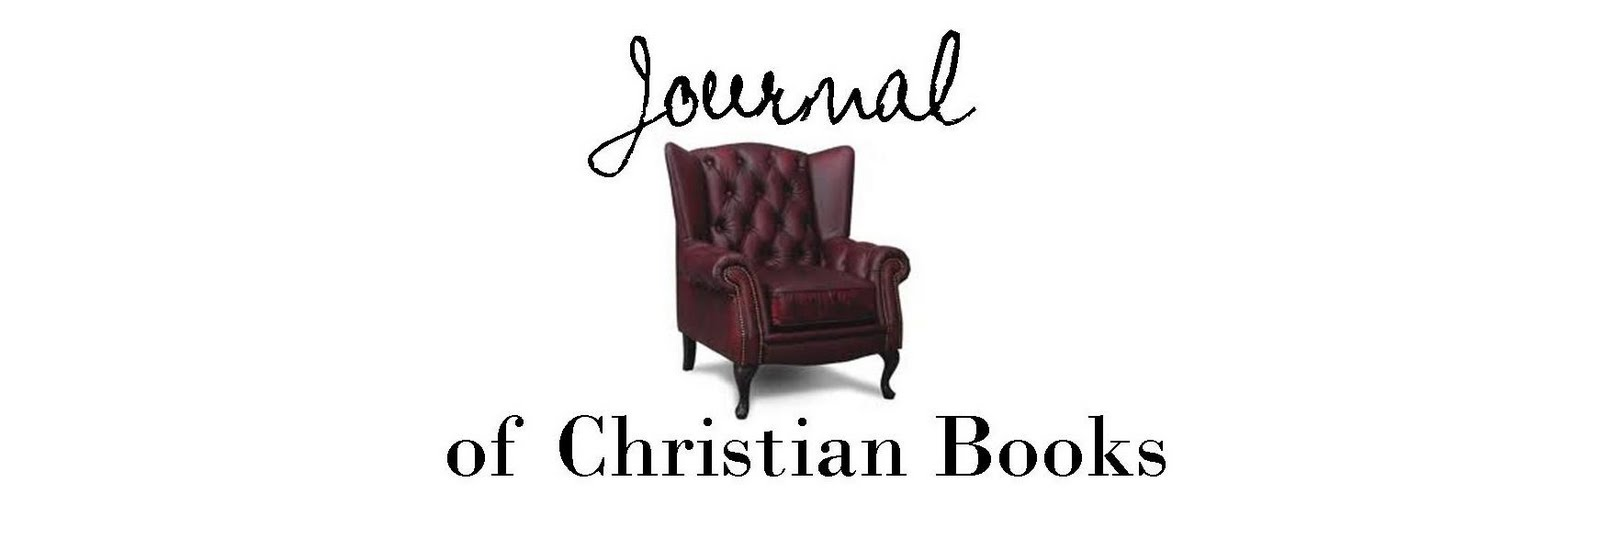 Journal of Christian Books